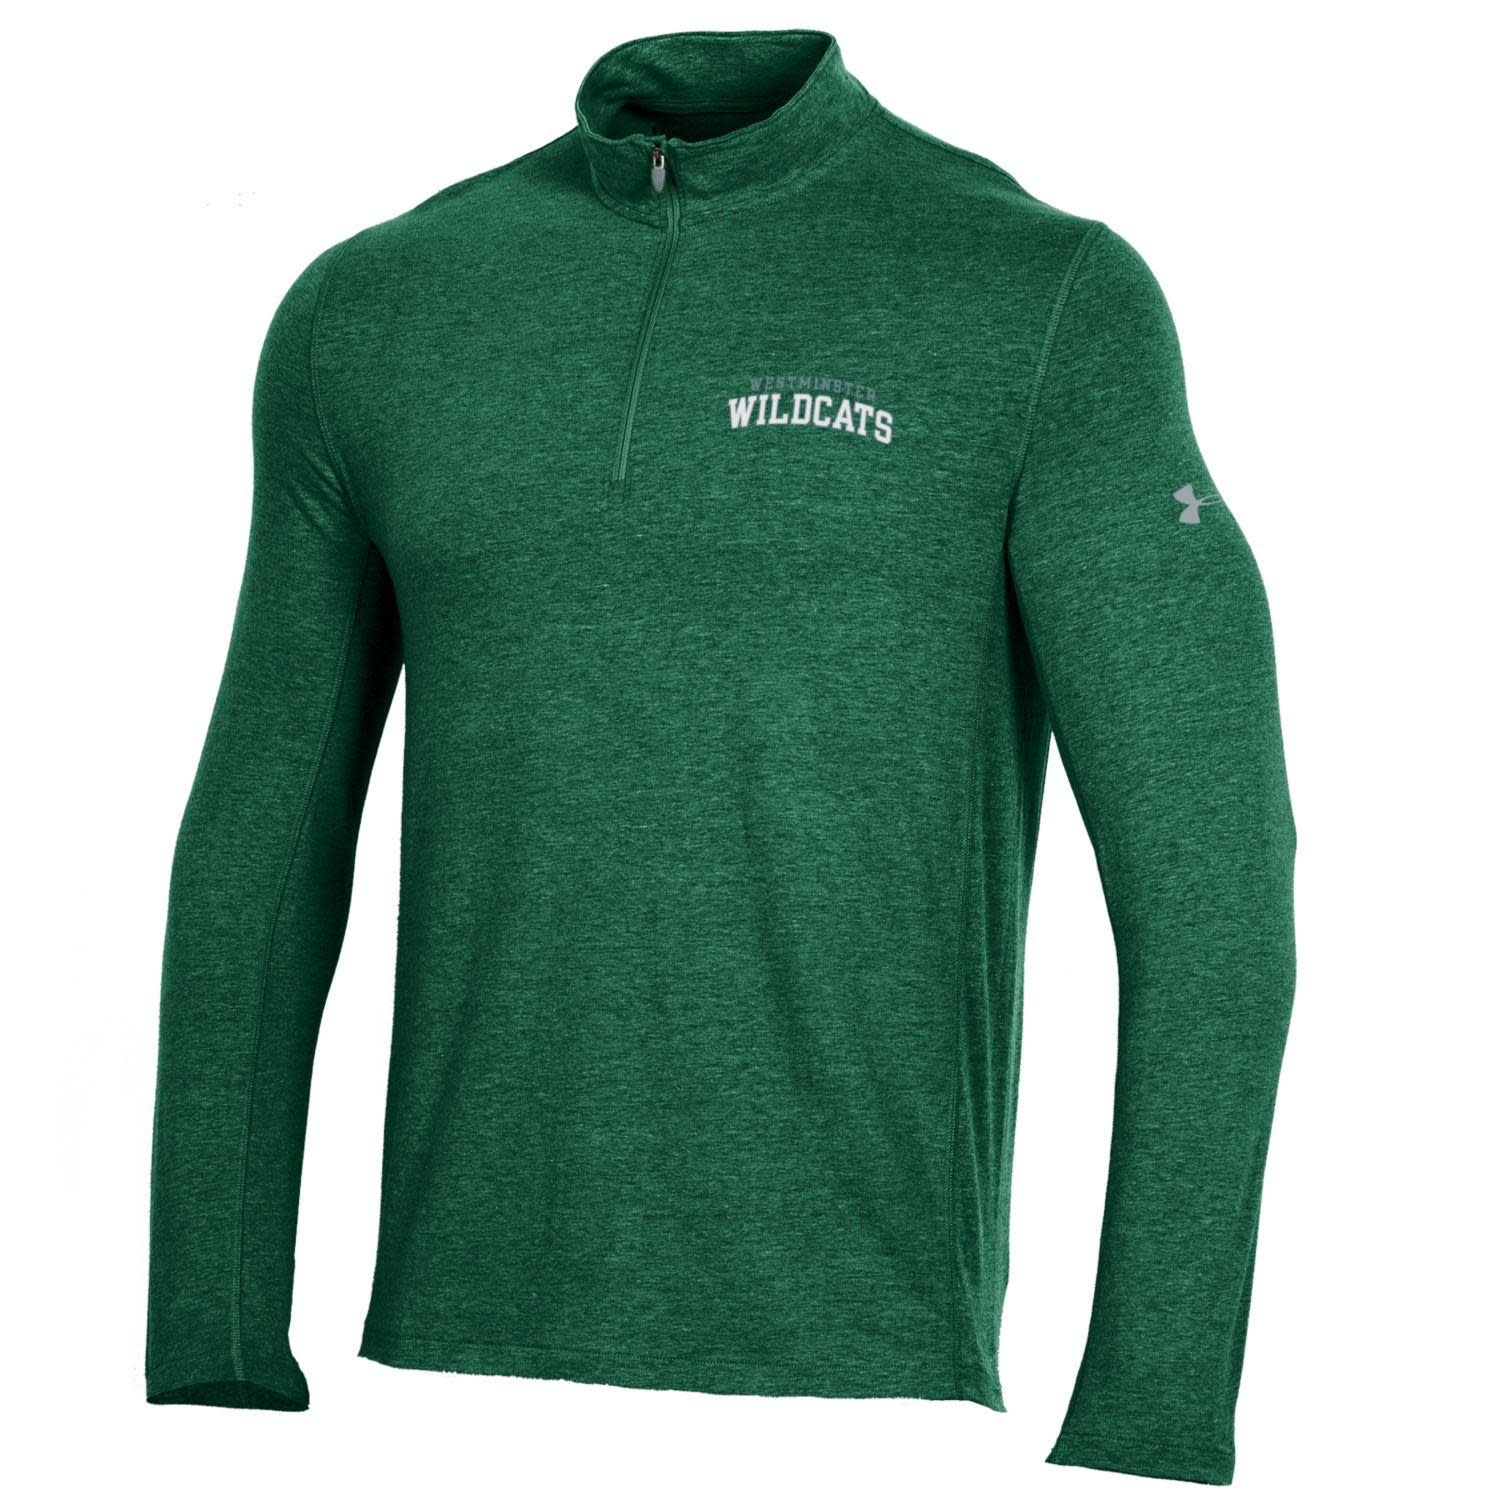 Under Armour Pullover: Mens Charged Cotton 1/4 Zip - Breathable side panels